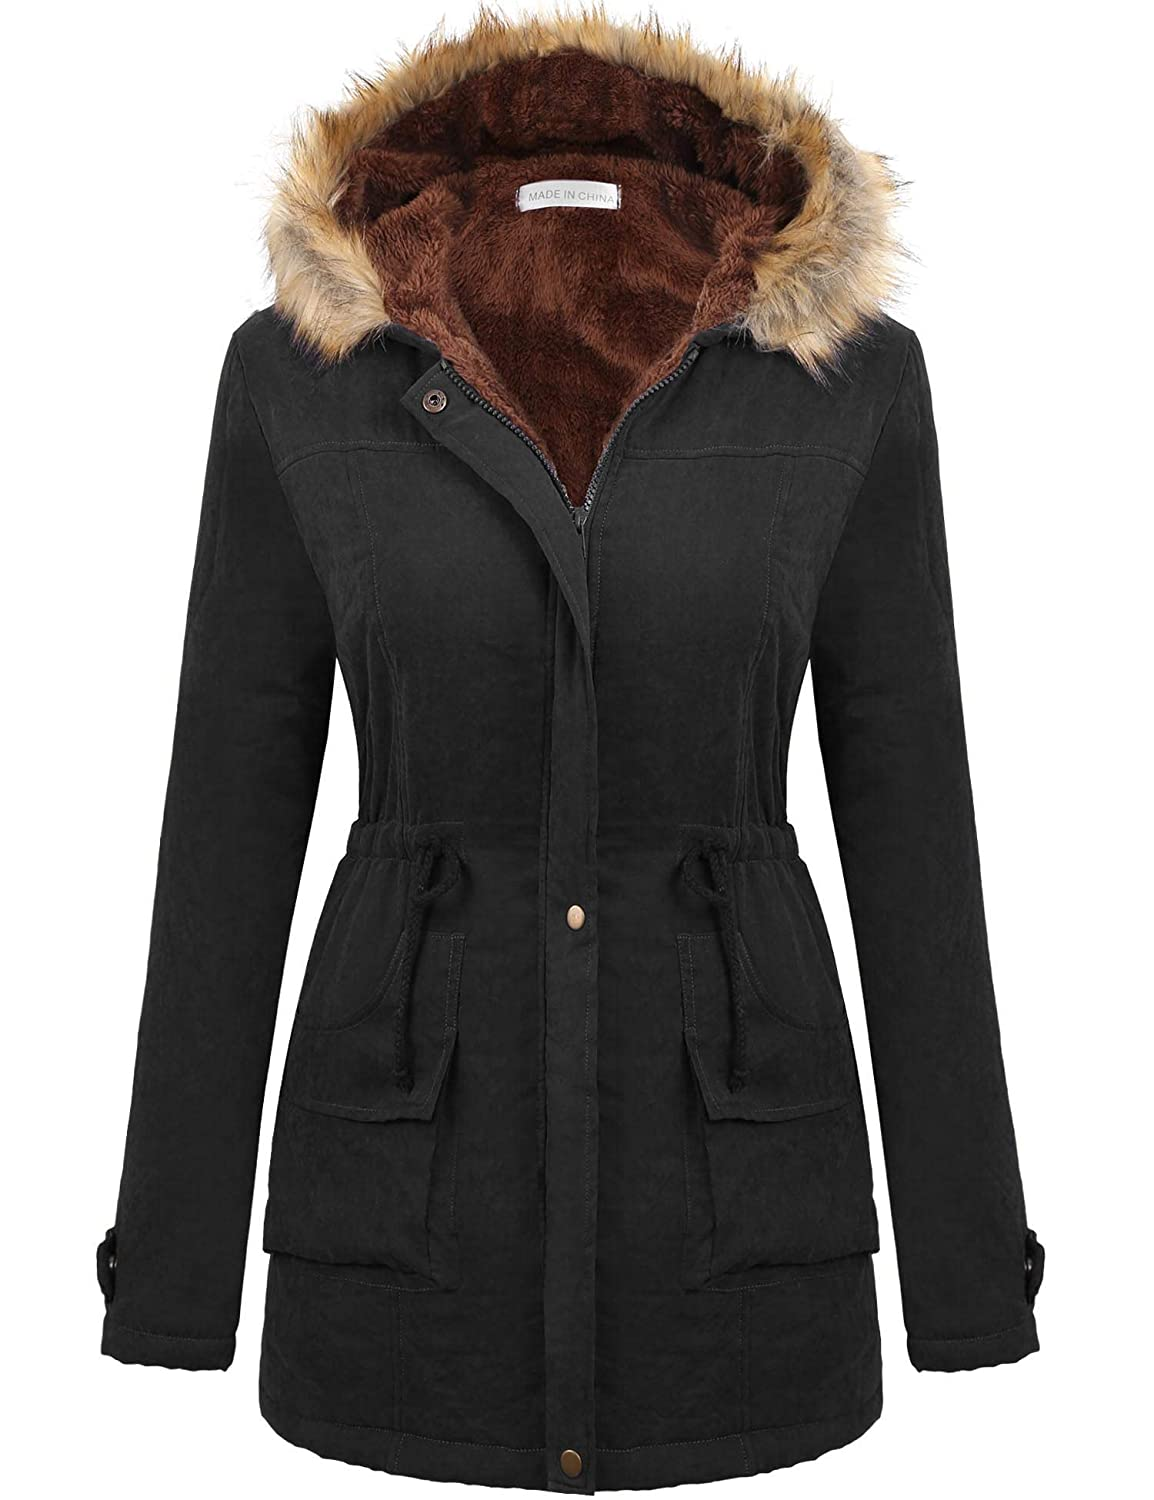 2024black Macr&Steve Winter Coats for Women, Military Hooded with Faux Fur Trim Winter Jacket ZipUp Front